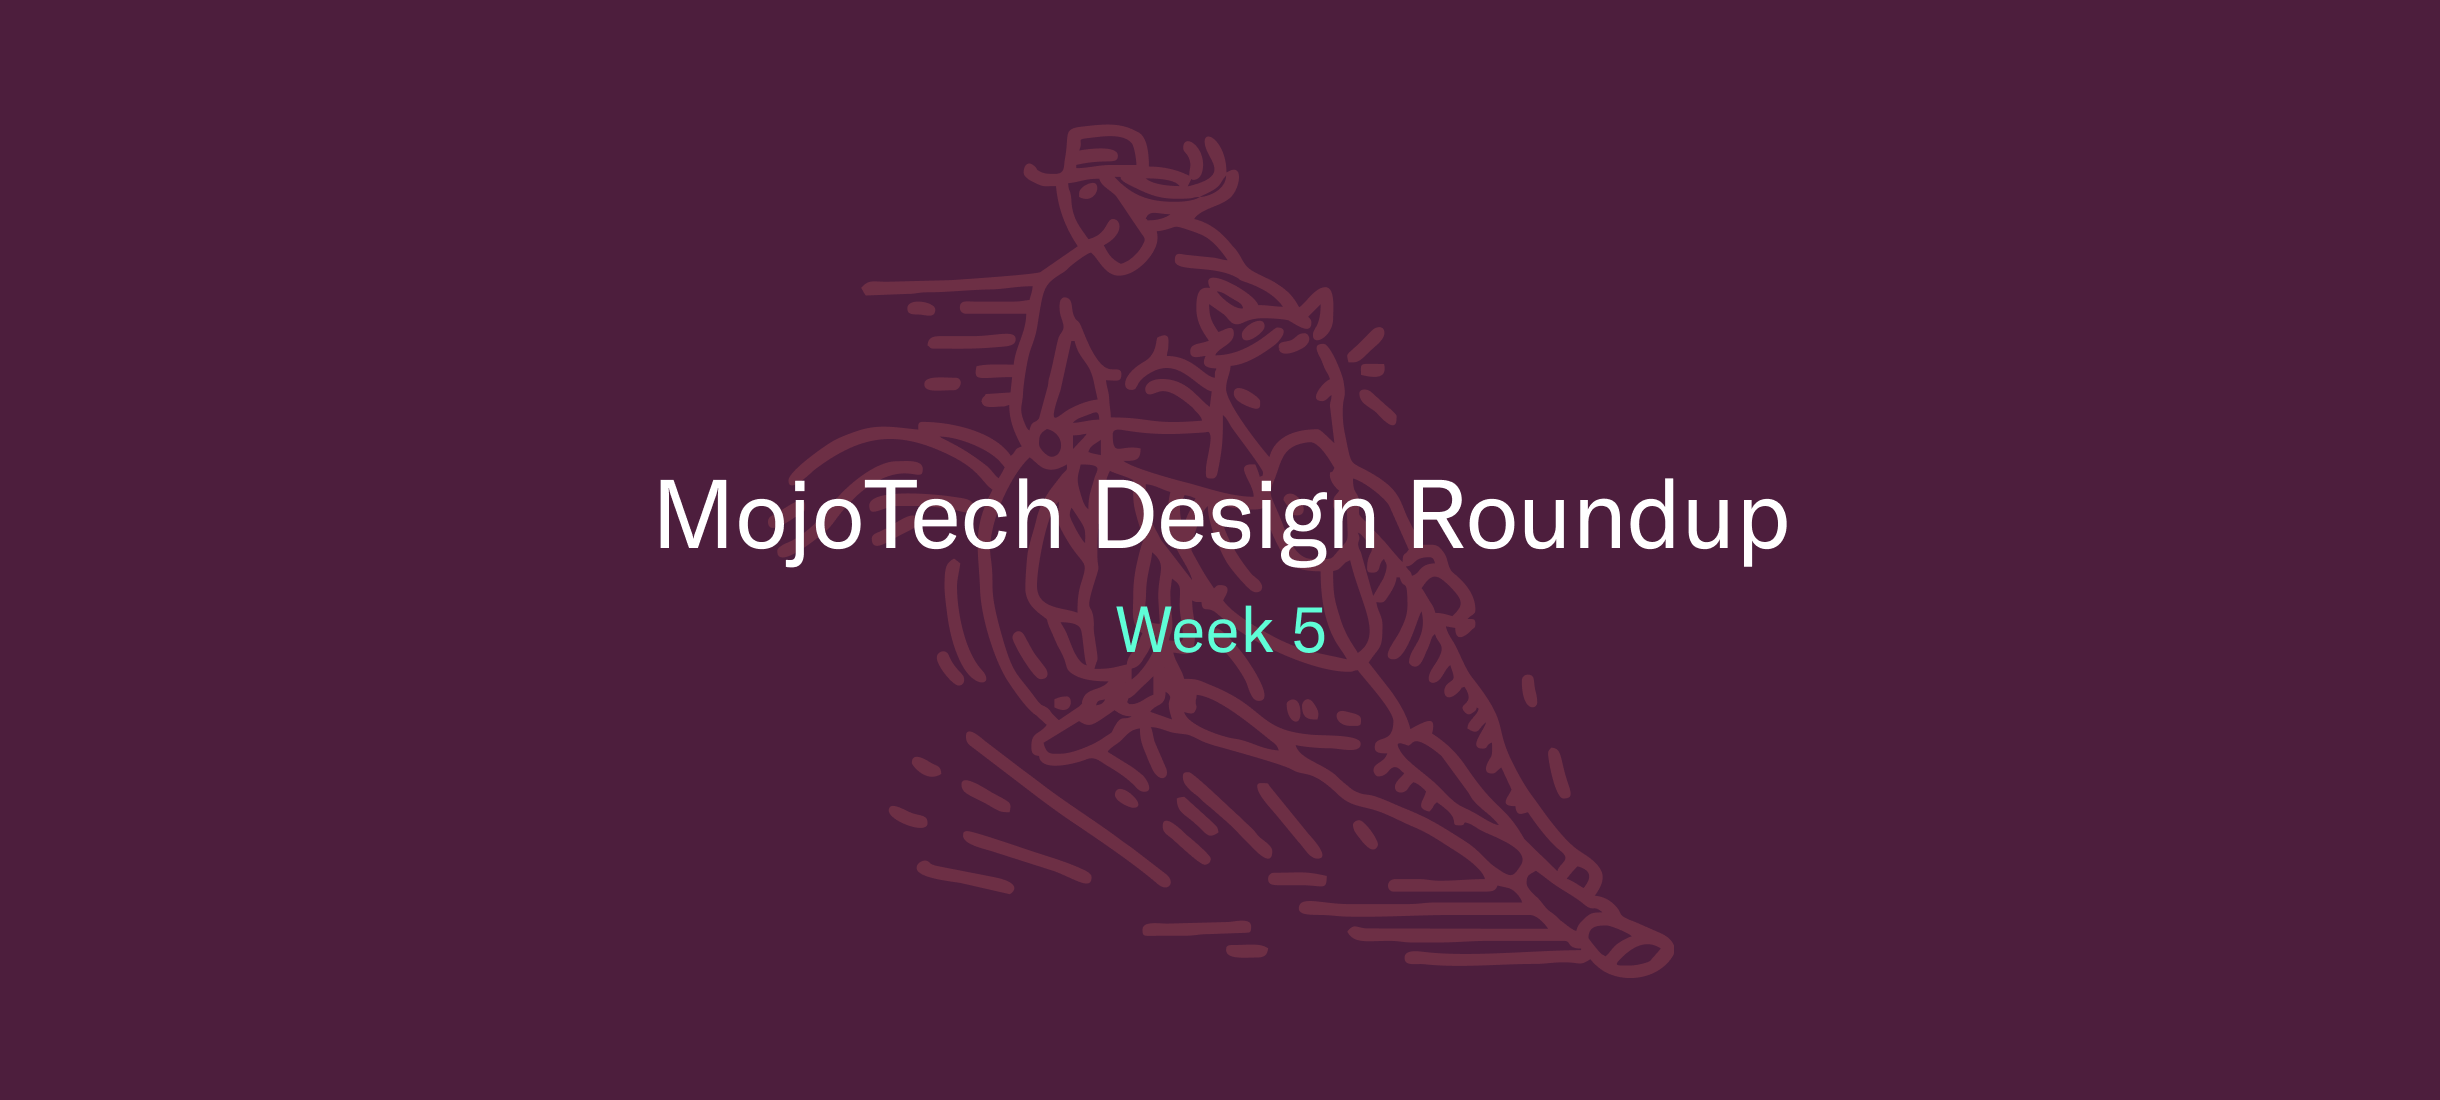 MojoTech Design Roundup week 5